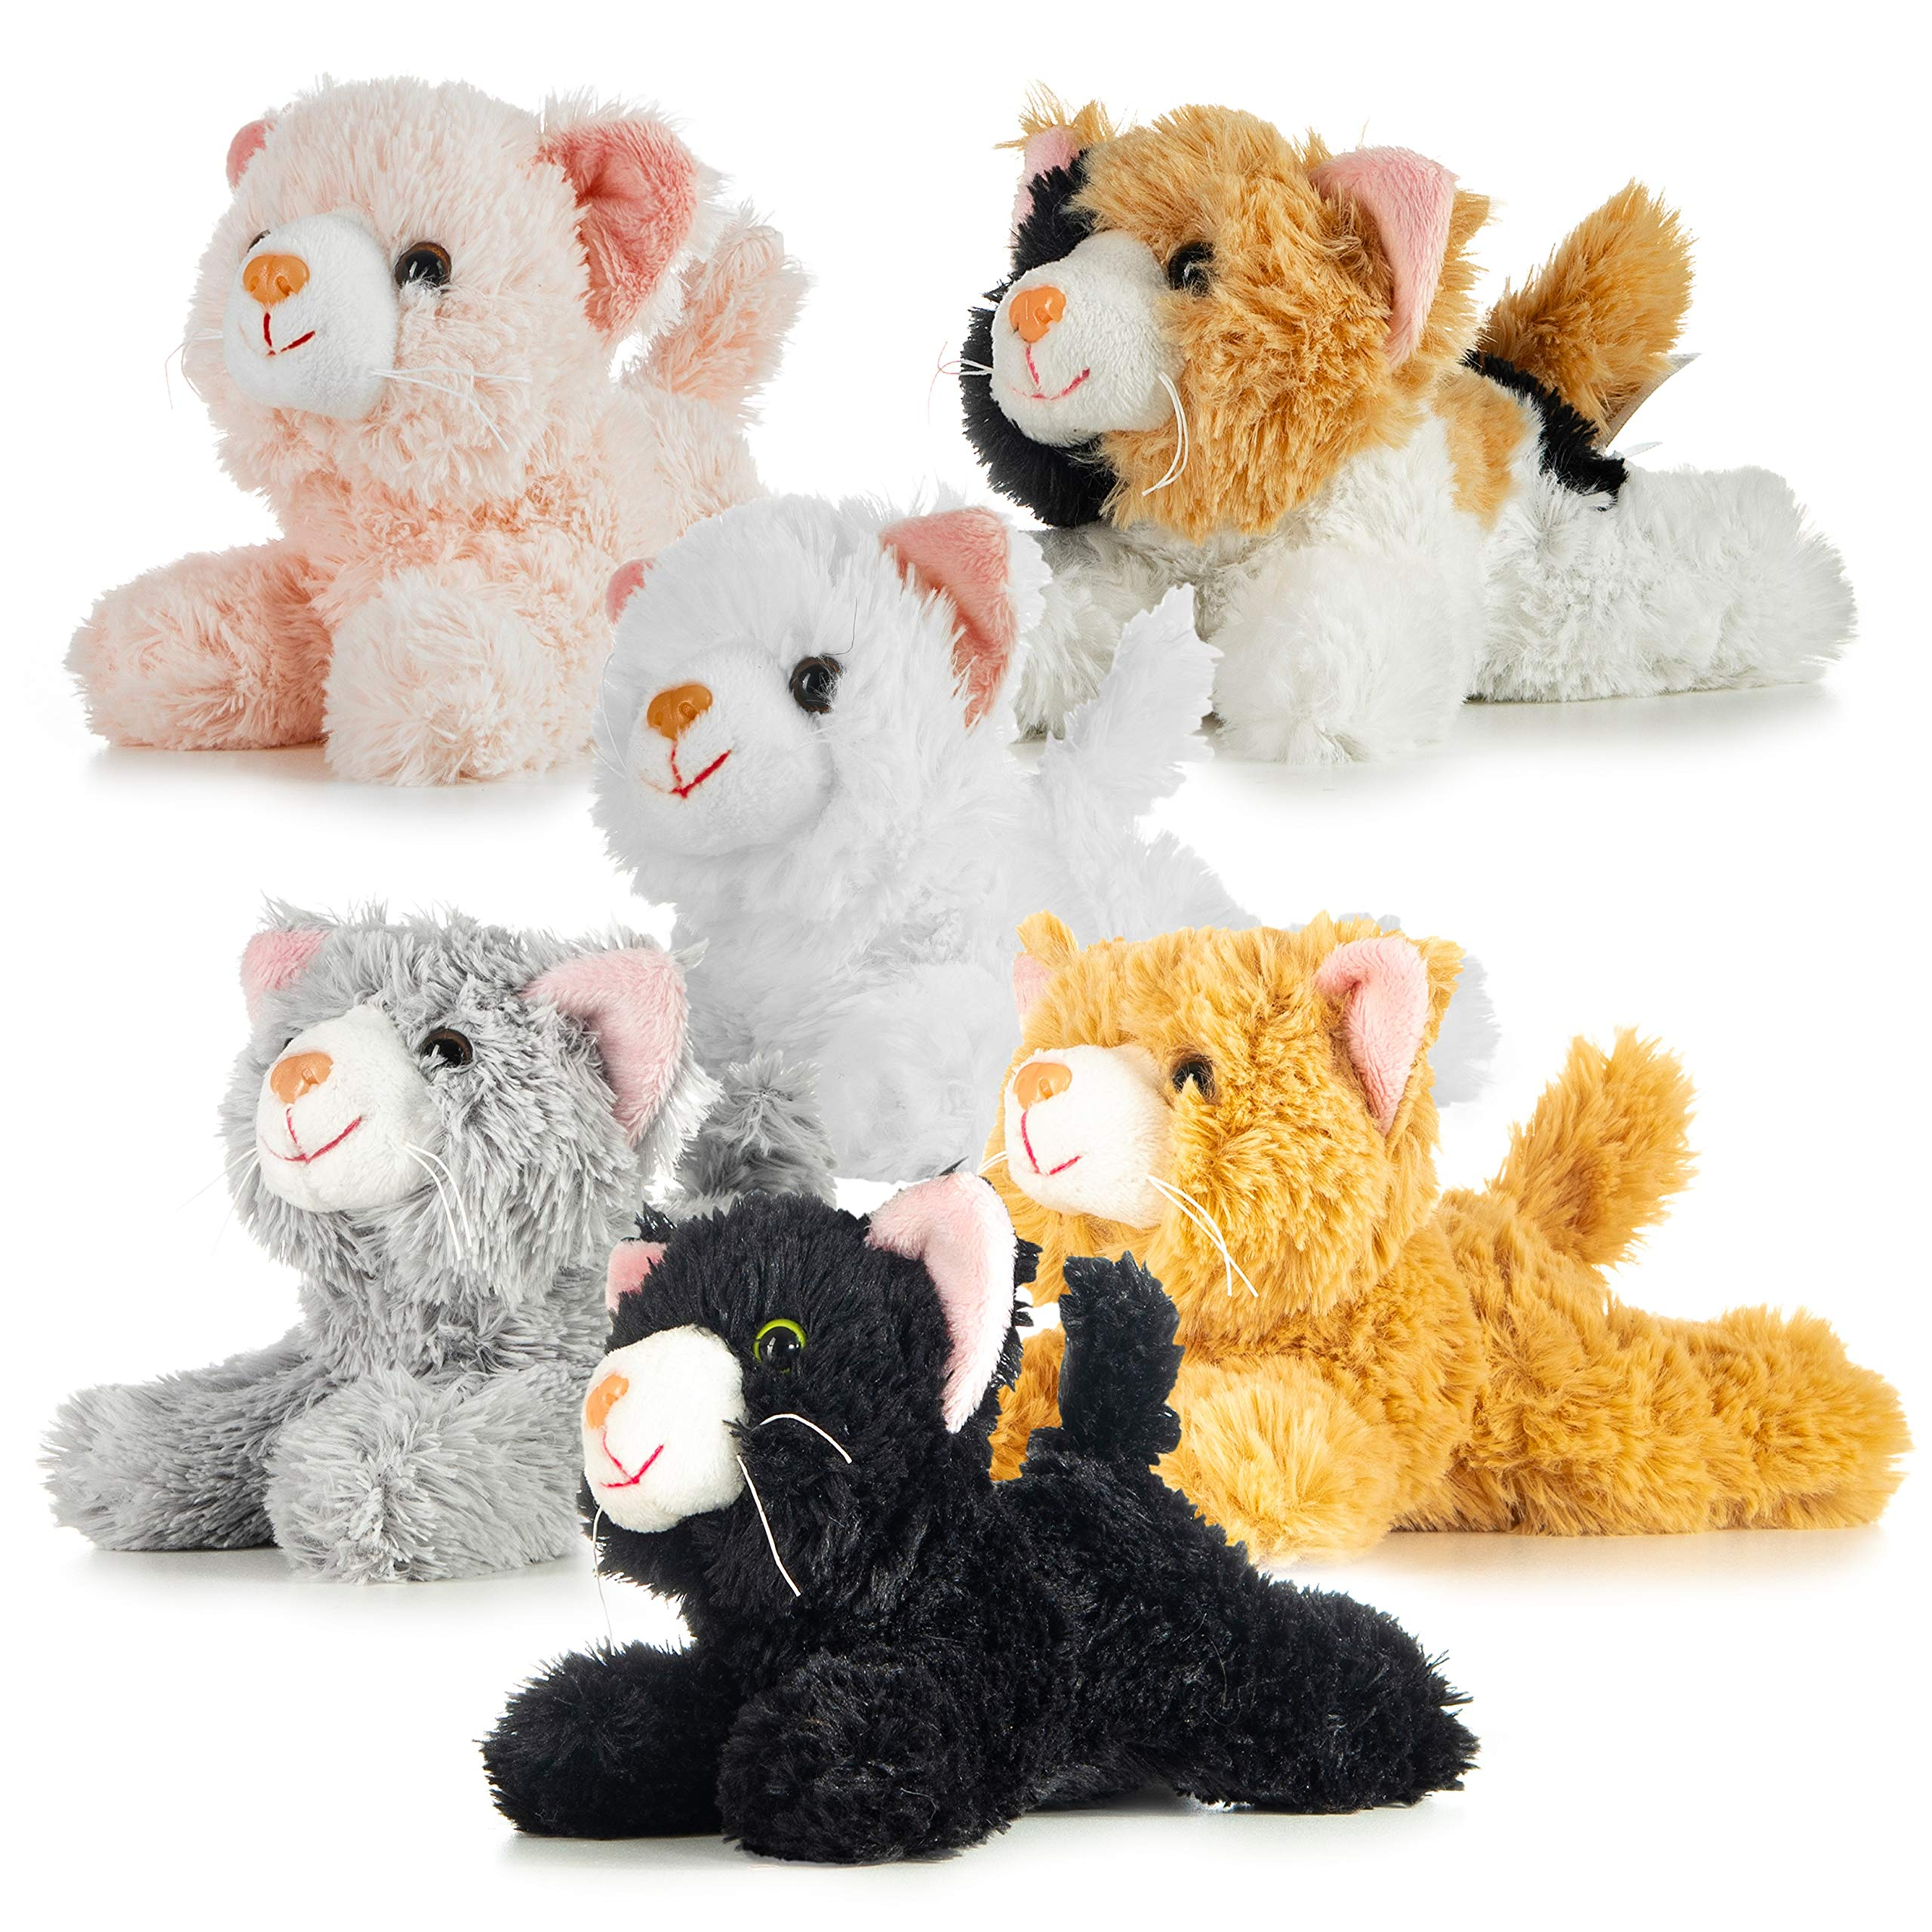 Prextex Pack of 6 Realistic Looking Plush Cats 6 Inches Long by Prextex